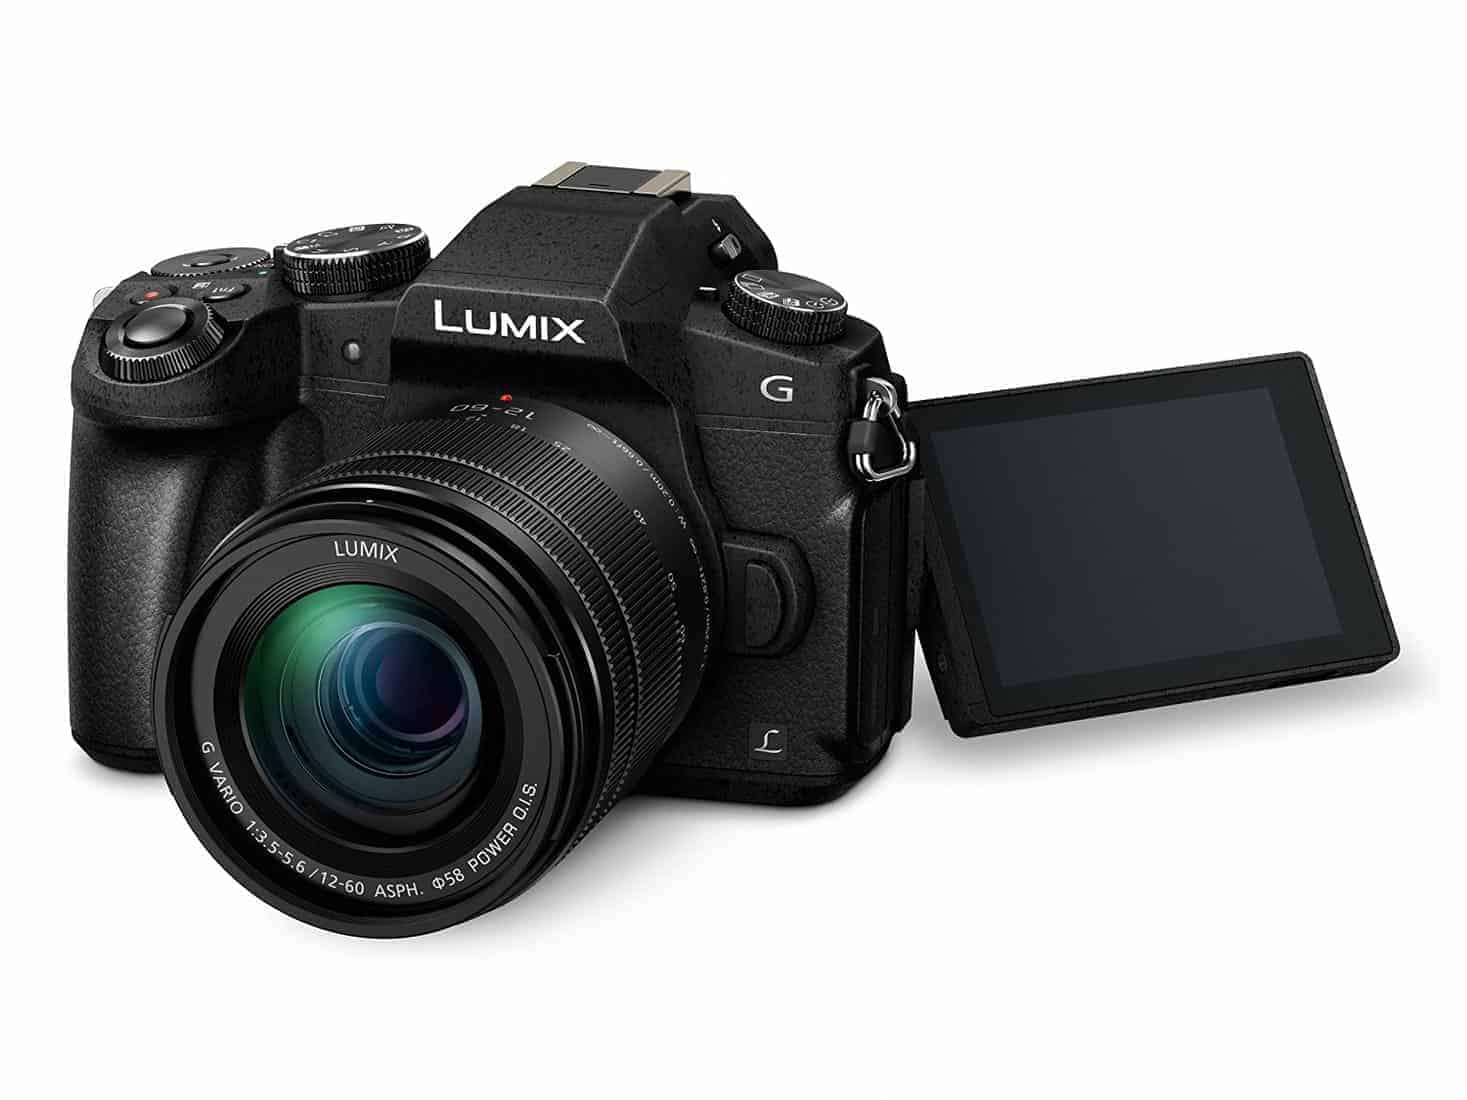 Top 5 New Interchangeable Lens Cameras